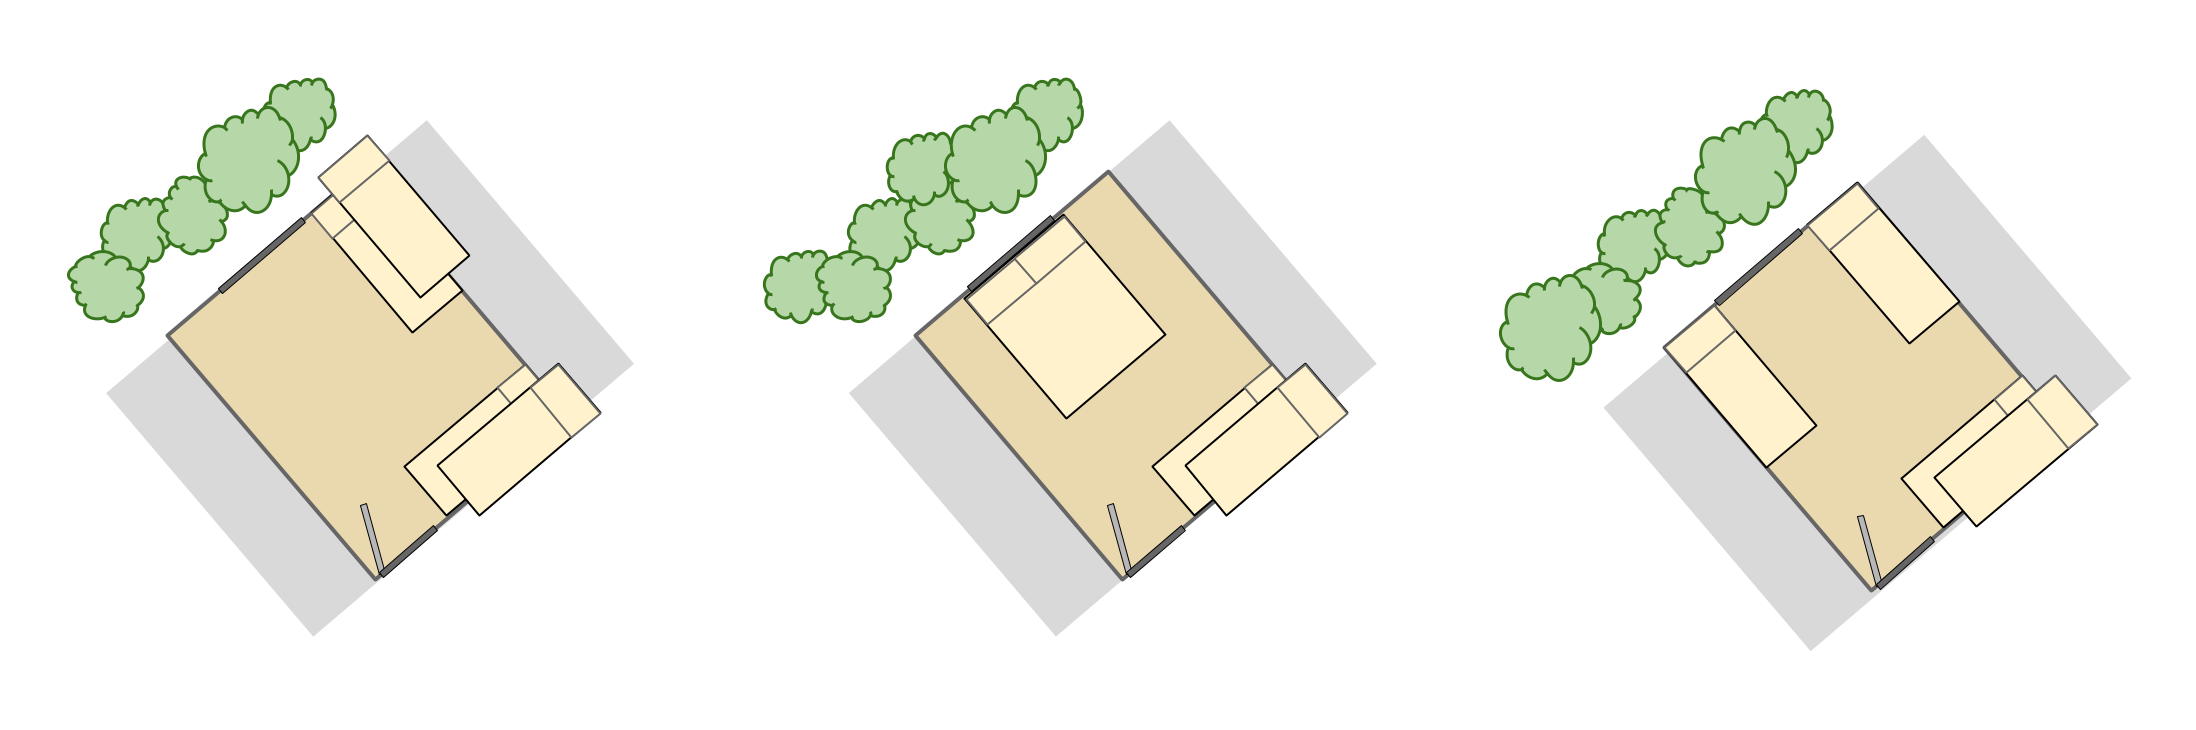 Room layouts.png